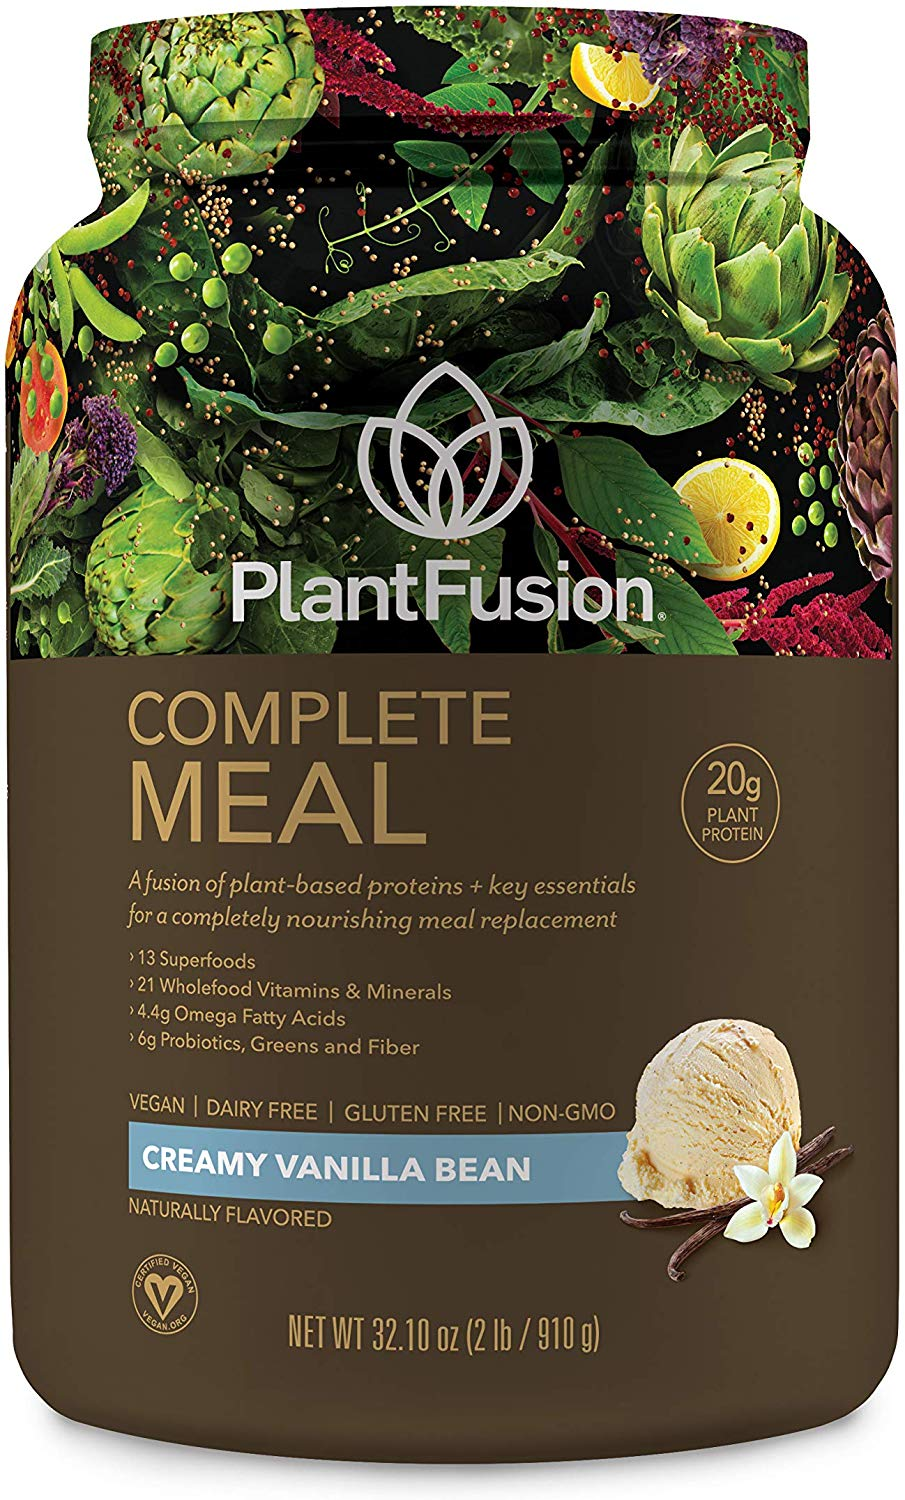 Plant-fusion organic meal replacement shake